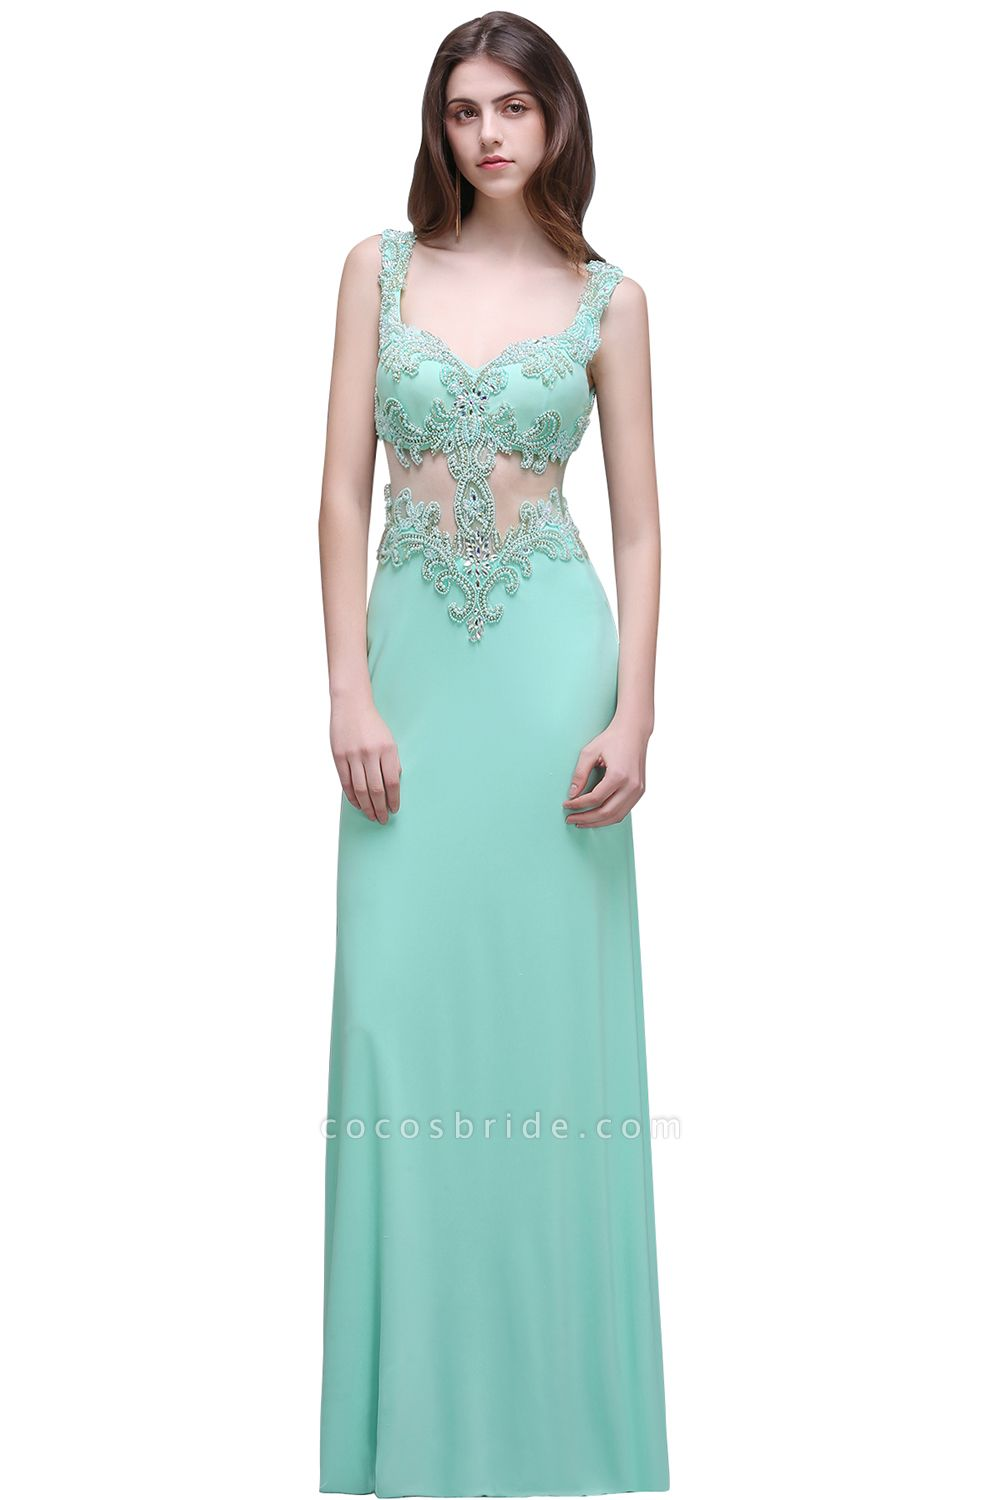 Sleek Straps Chiffon Column Prom Dress